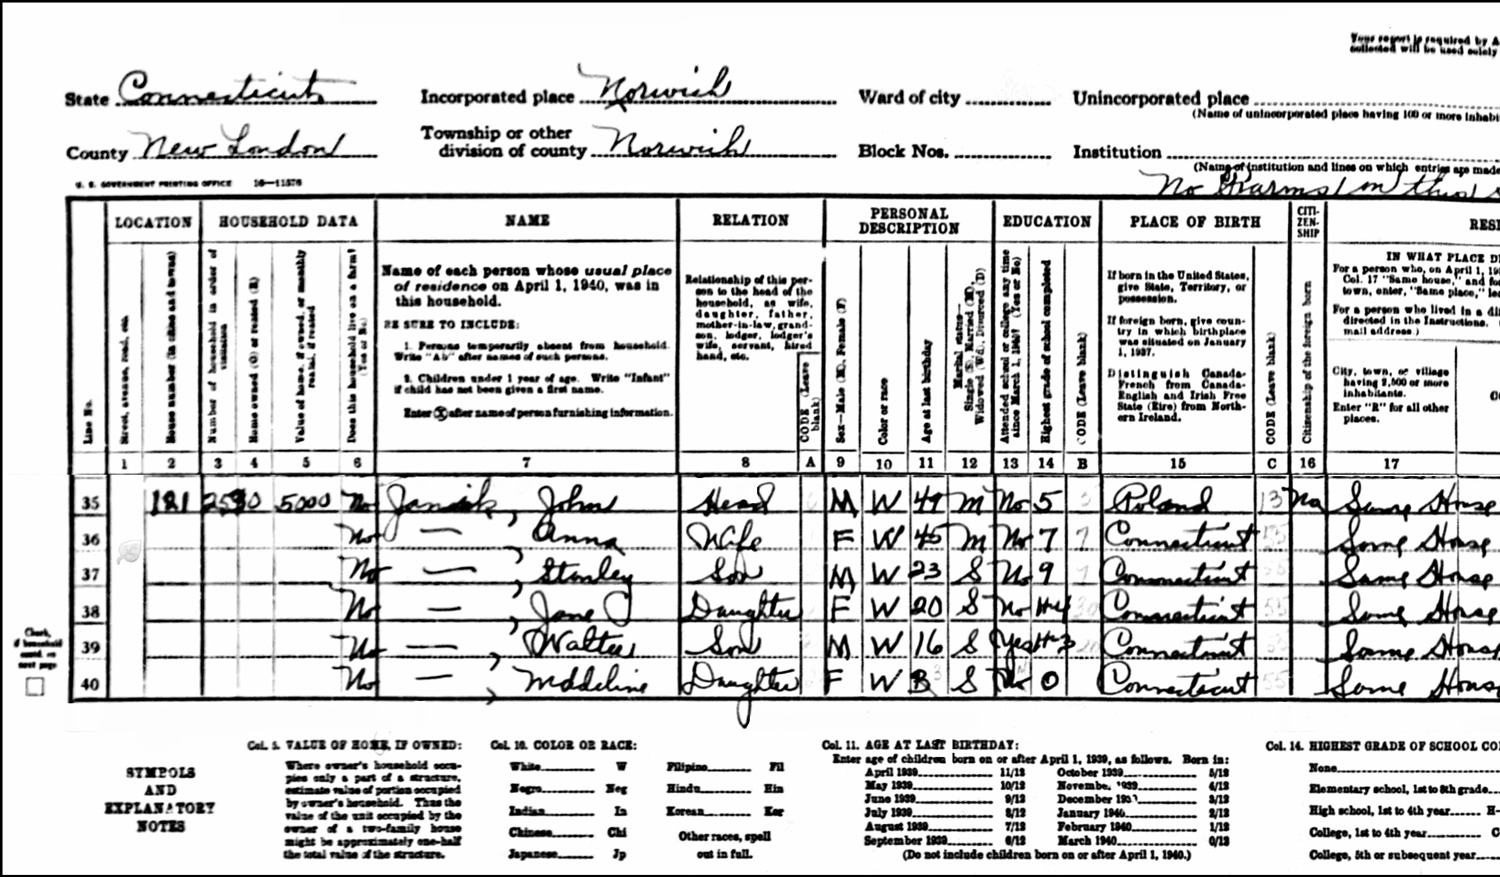 1940 US Federal Census Record for the John Janik Household (Left)